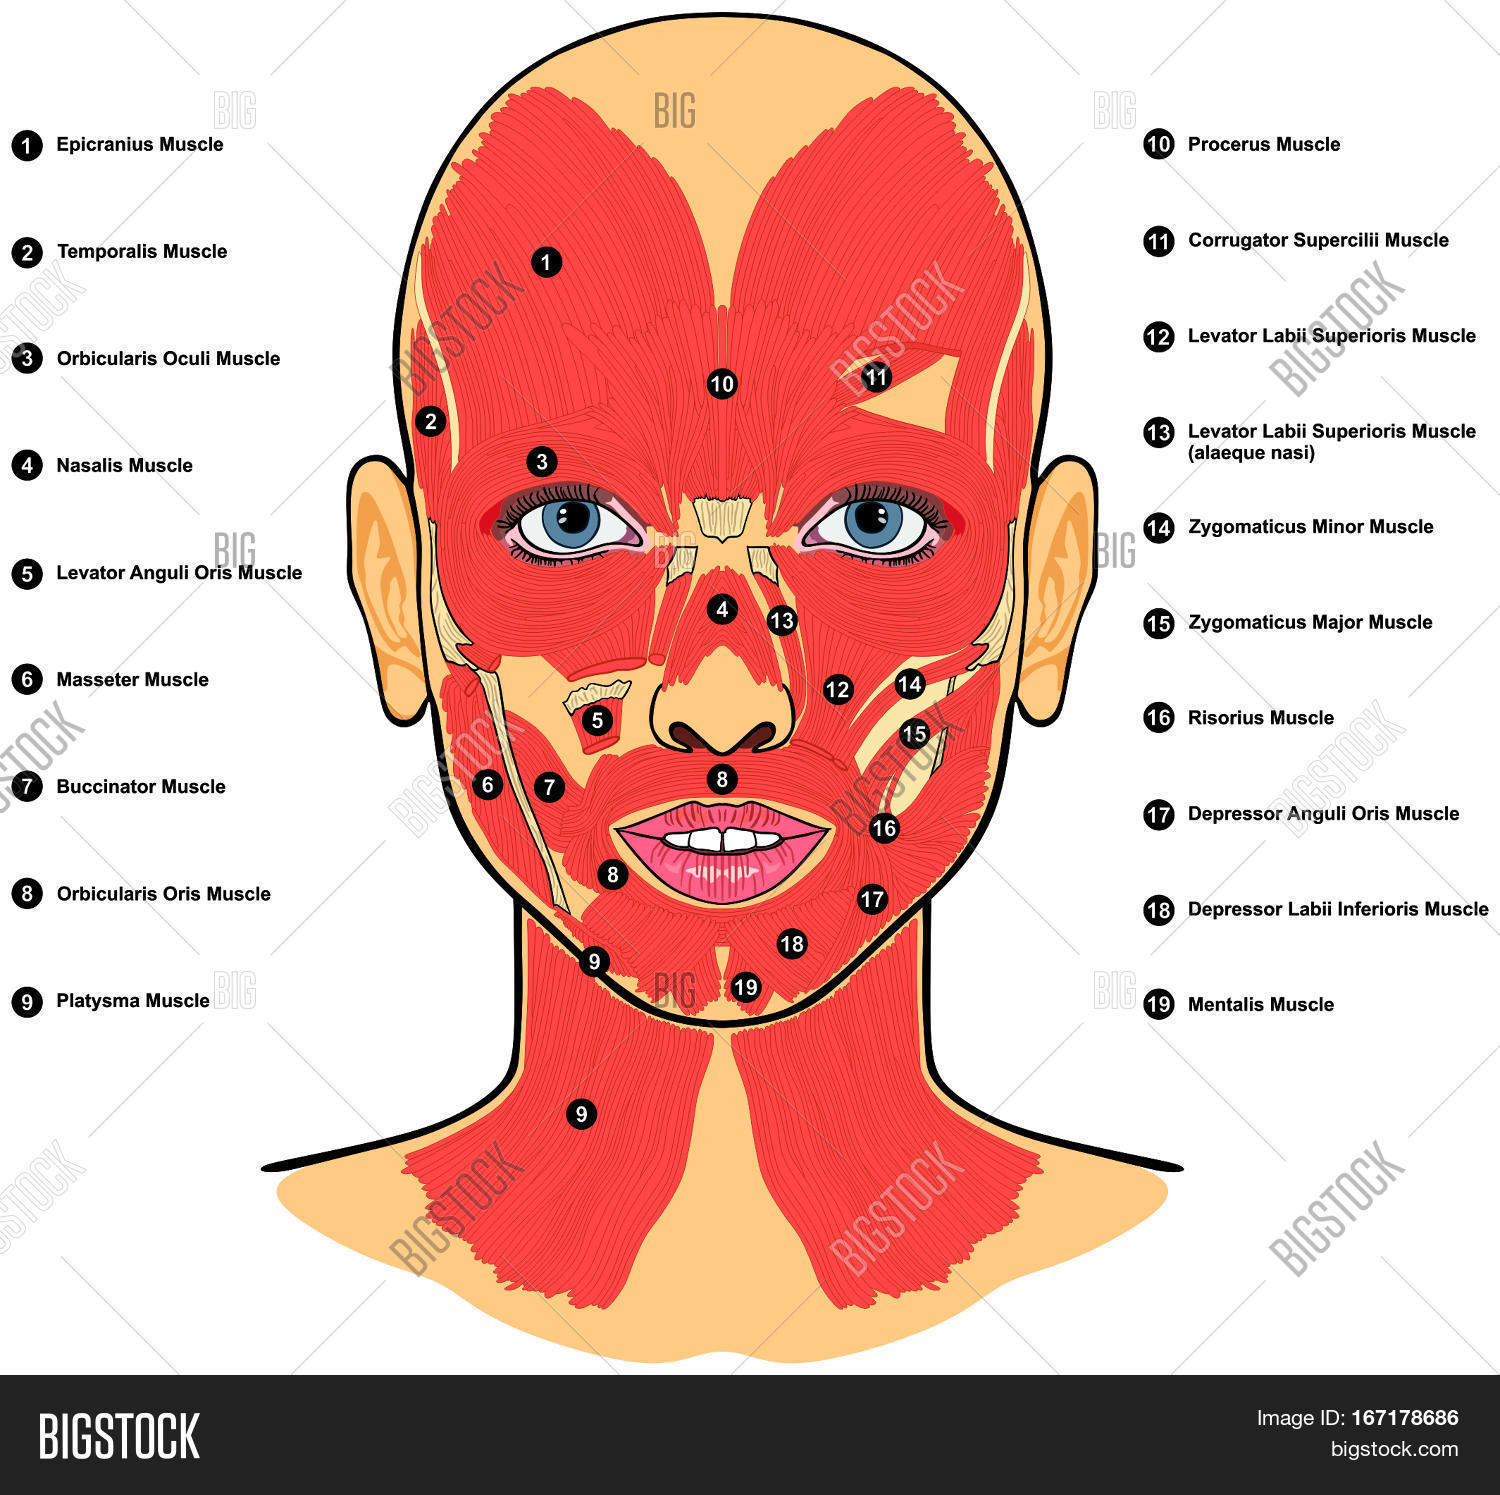 Human Face Muscles Image Photo Free Trial Bigstock